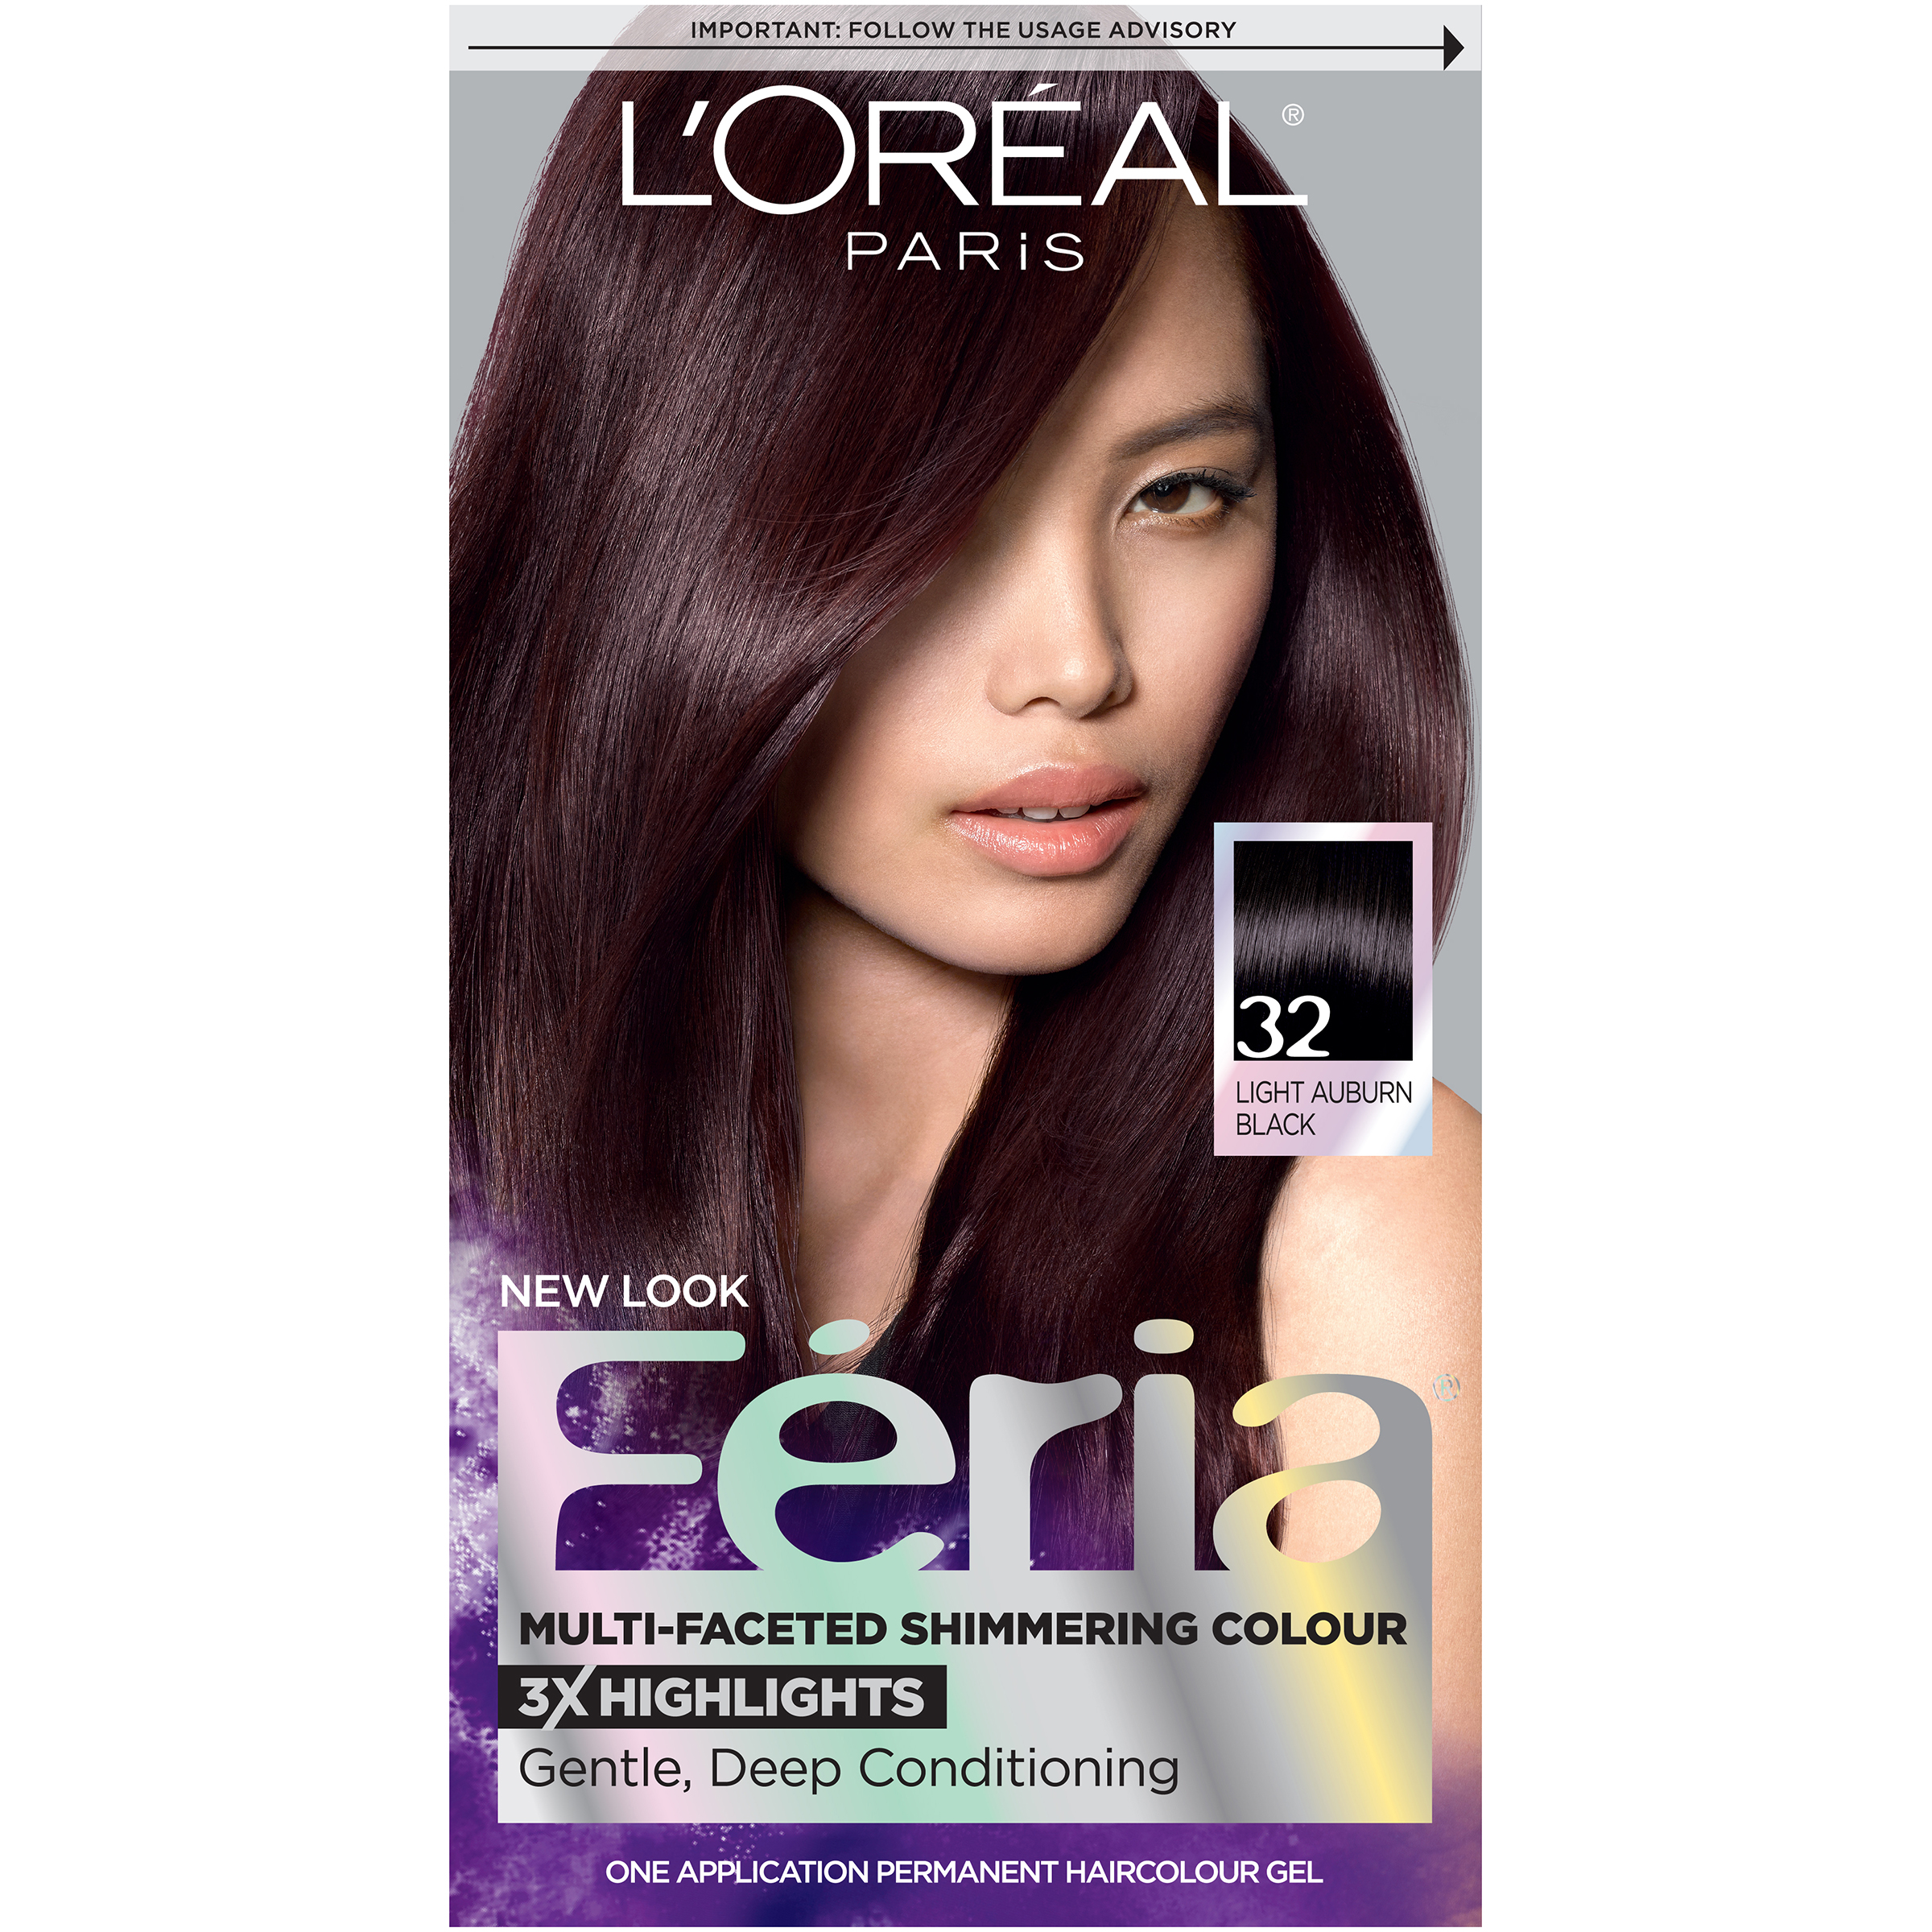 Loreal Paris Feria Shimmering Permanent Hair Color Ebay